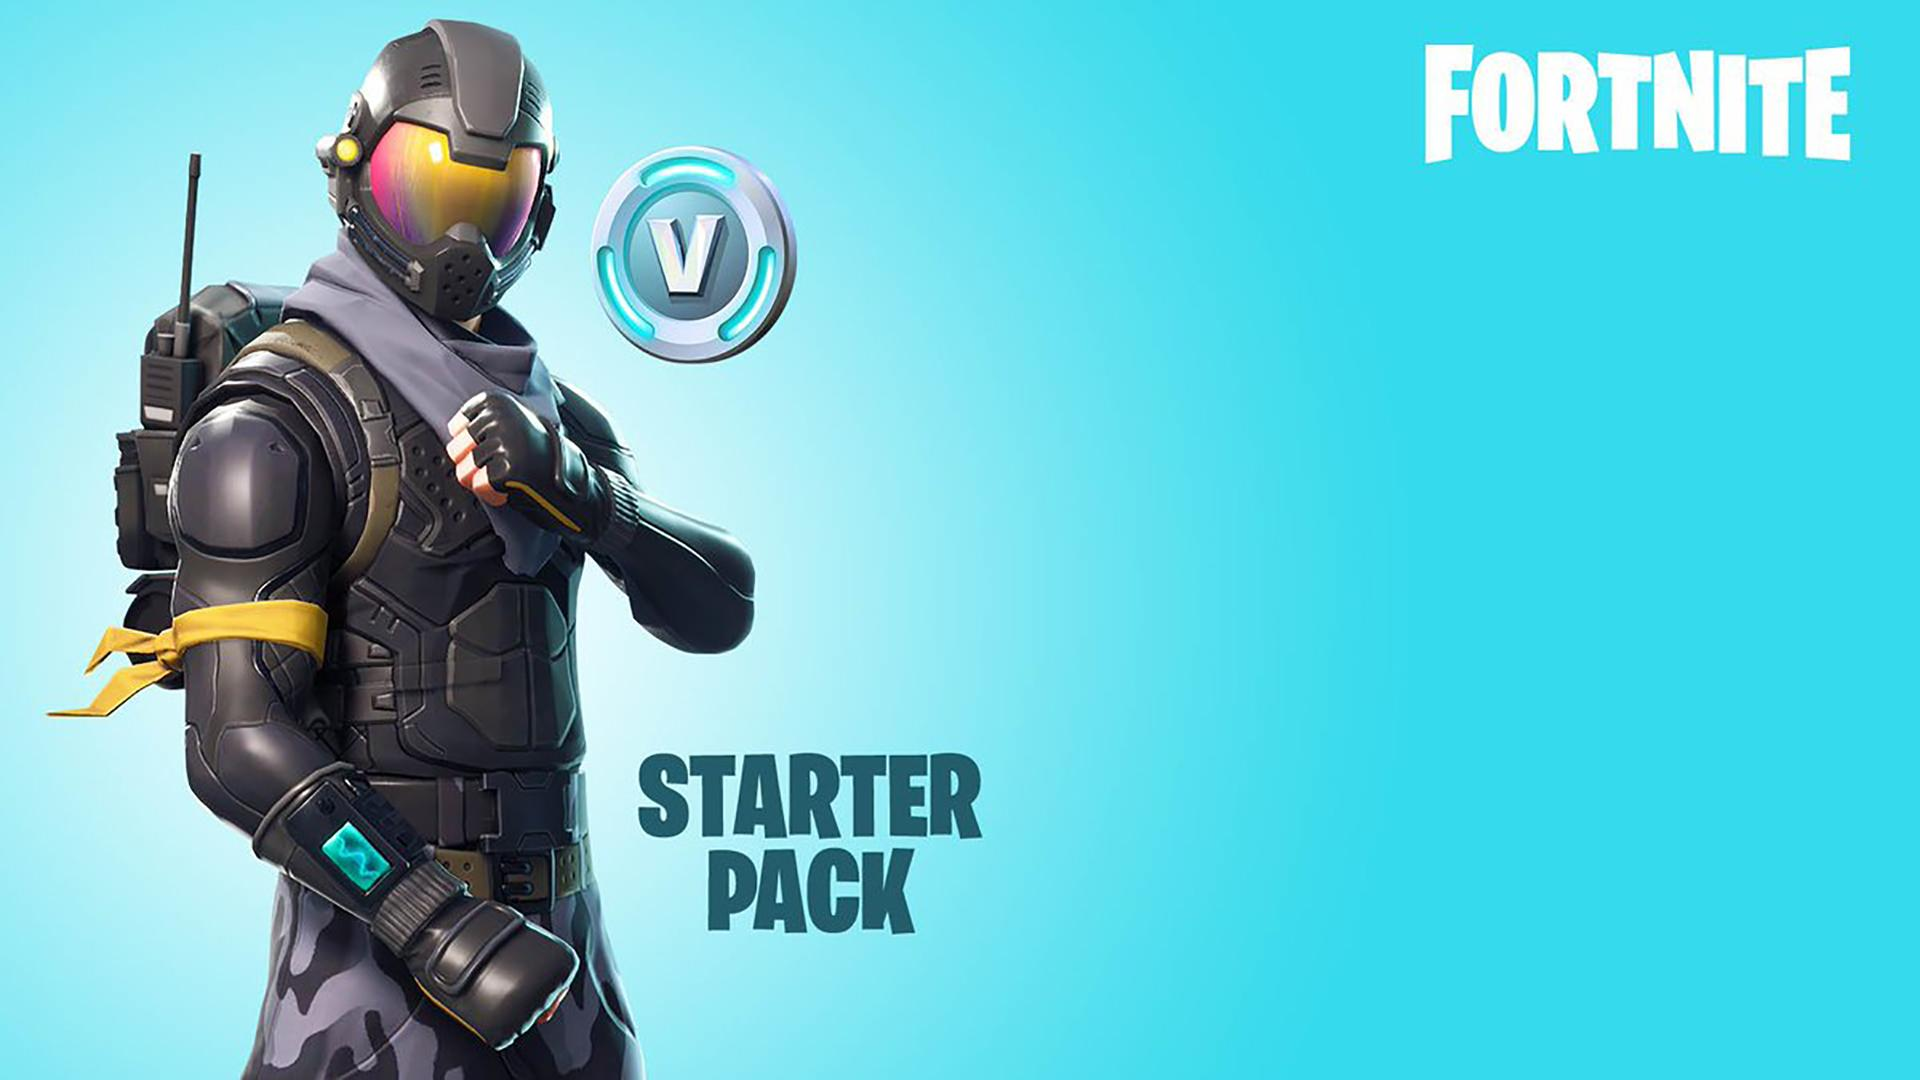 Rogue Agent Fortnite Outfit Skin How to Get